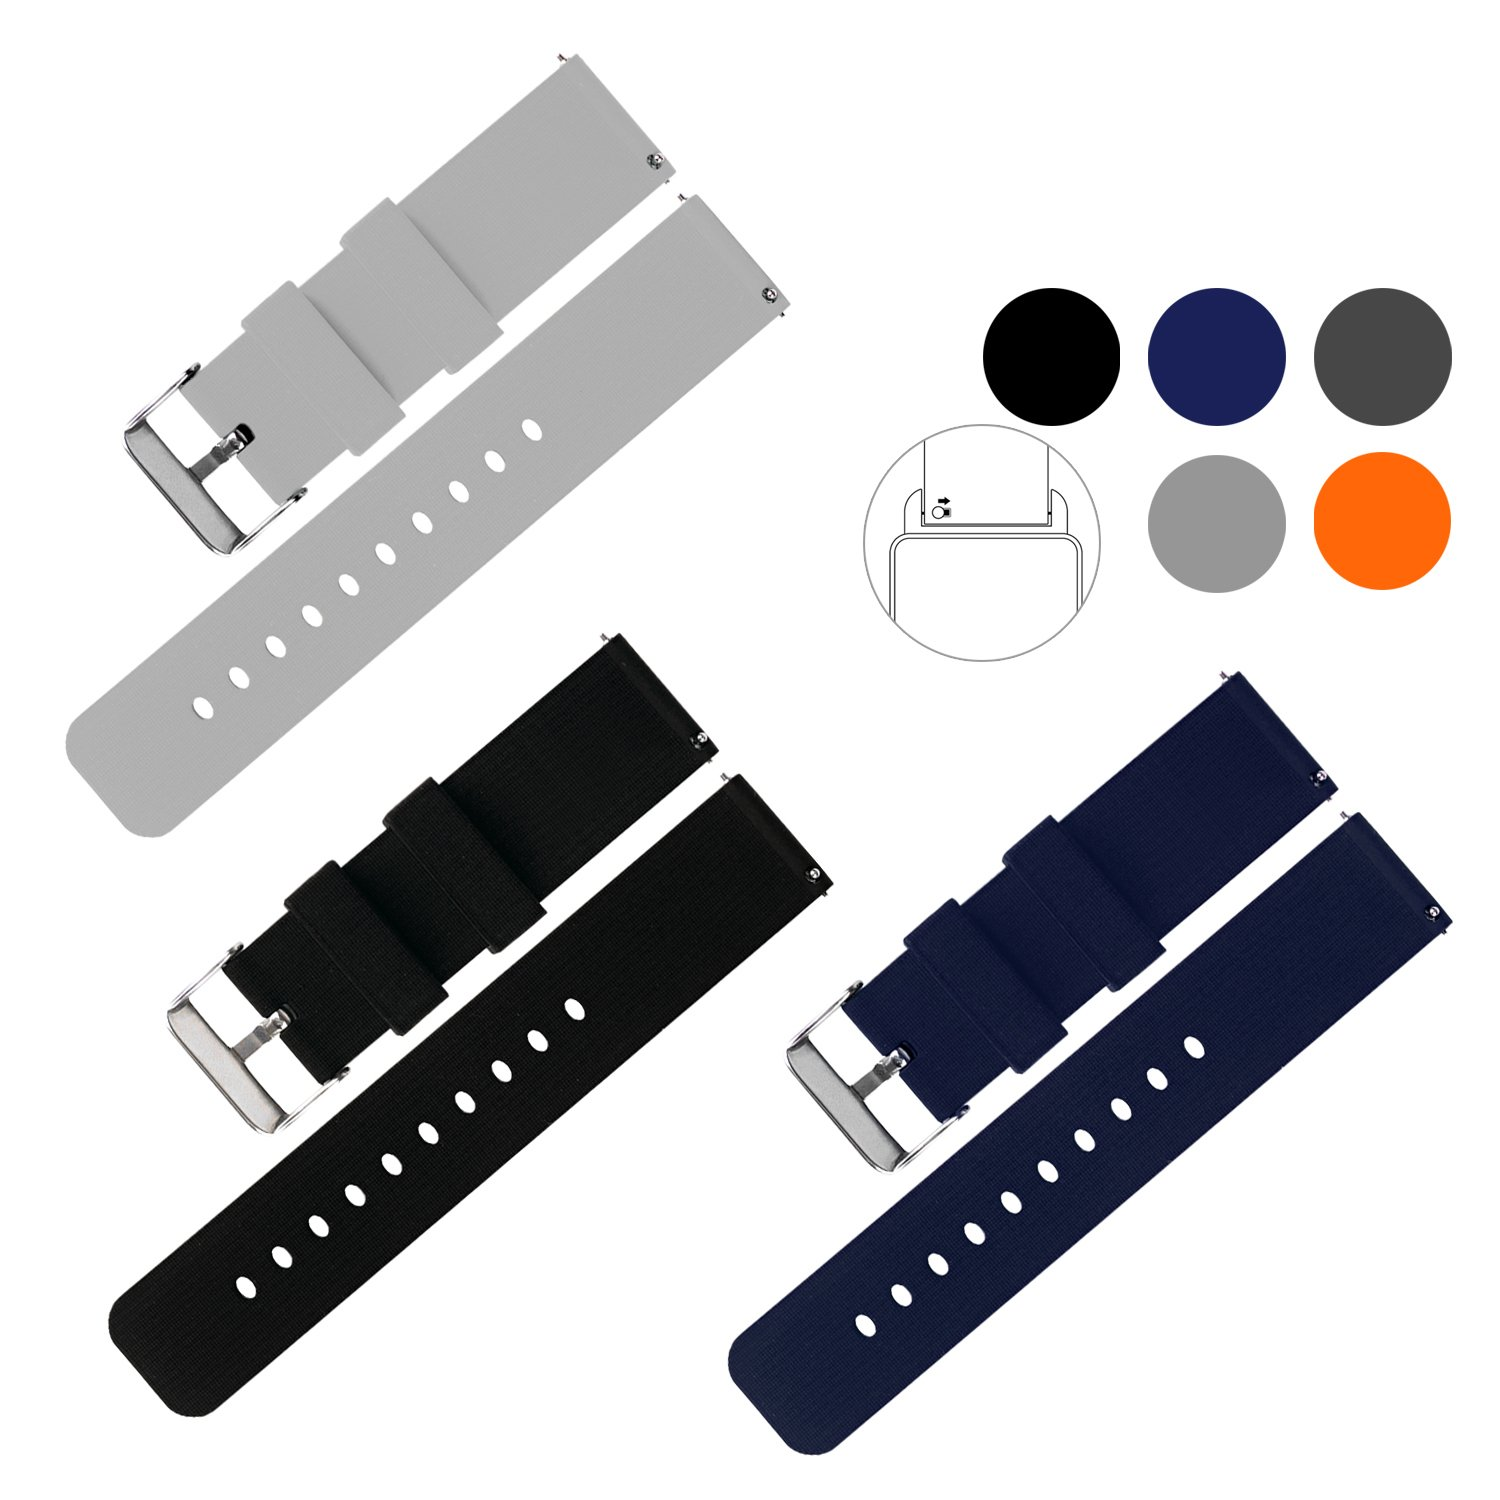 {New Arrival} Vetoo Quick Release Silicone Watch Bands, Choose Color and Width 18mm, 20mm, 22mm, 8 Colors Rubber Replacement Band Strap for Men Women